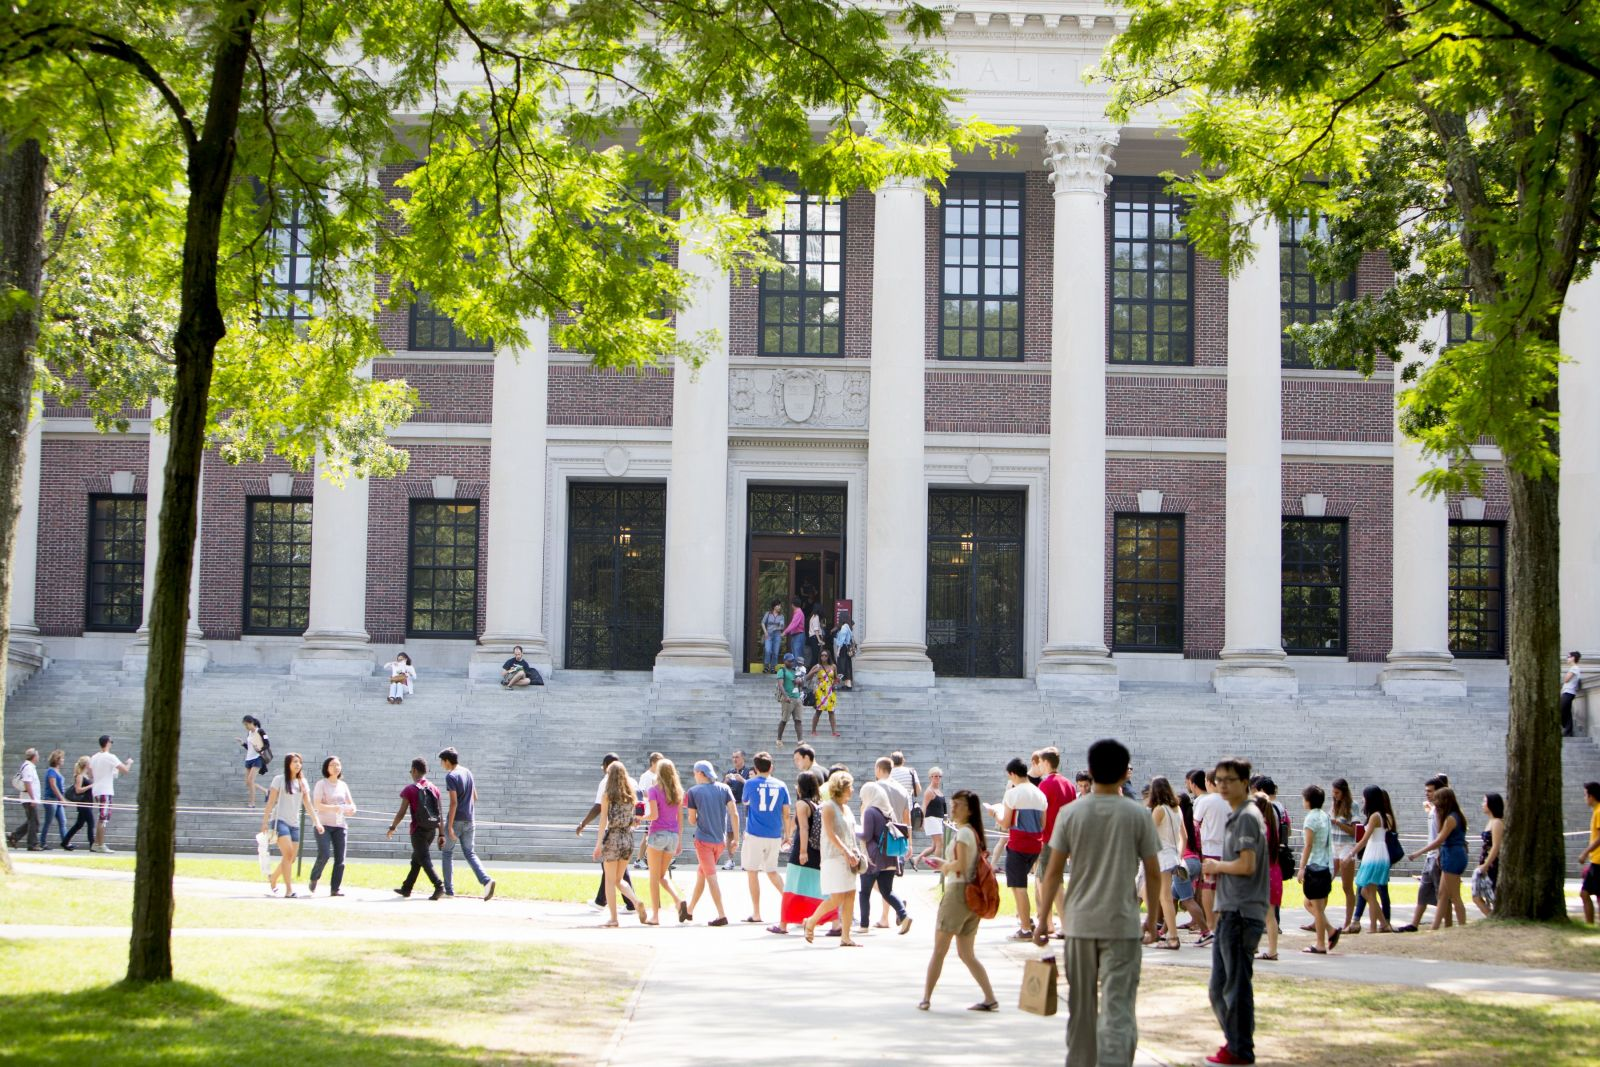 Harvard Has Been The Setting For Many University Based Films Such As Good Will Hunting 1997 And Legally Blonde 2001